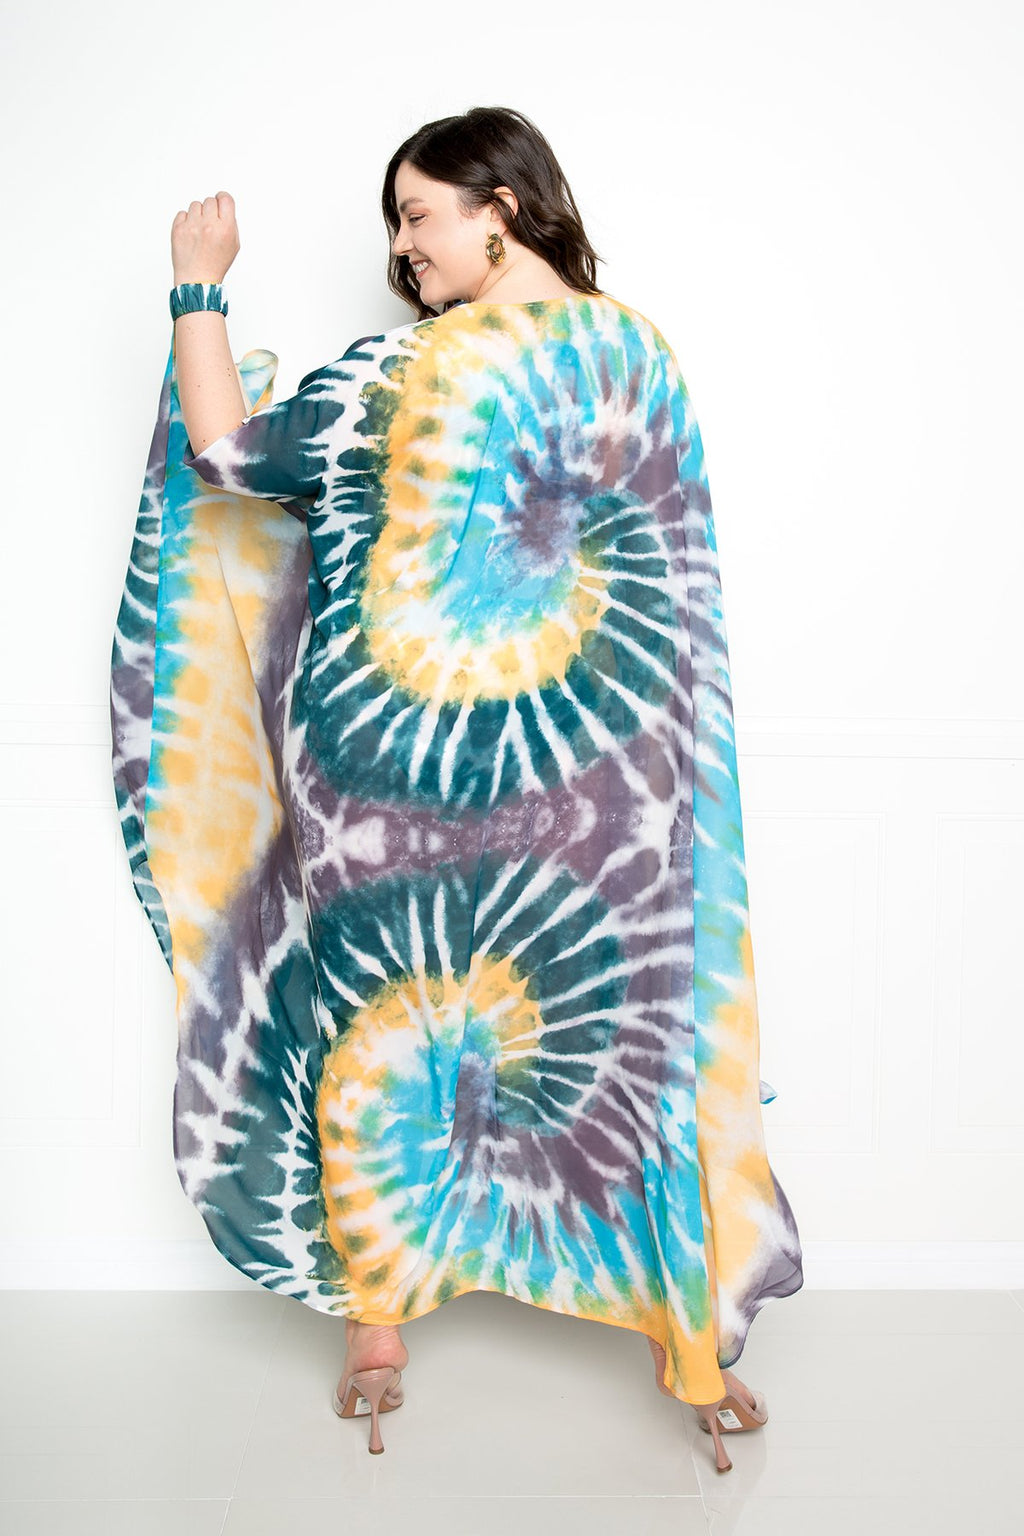 TIE-DYE COVER-UPS WITH WRIST BAND